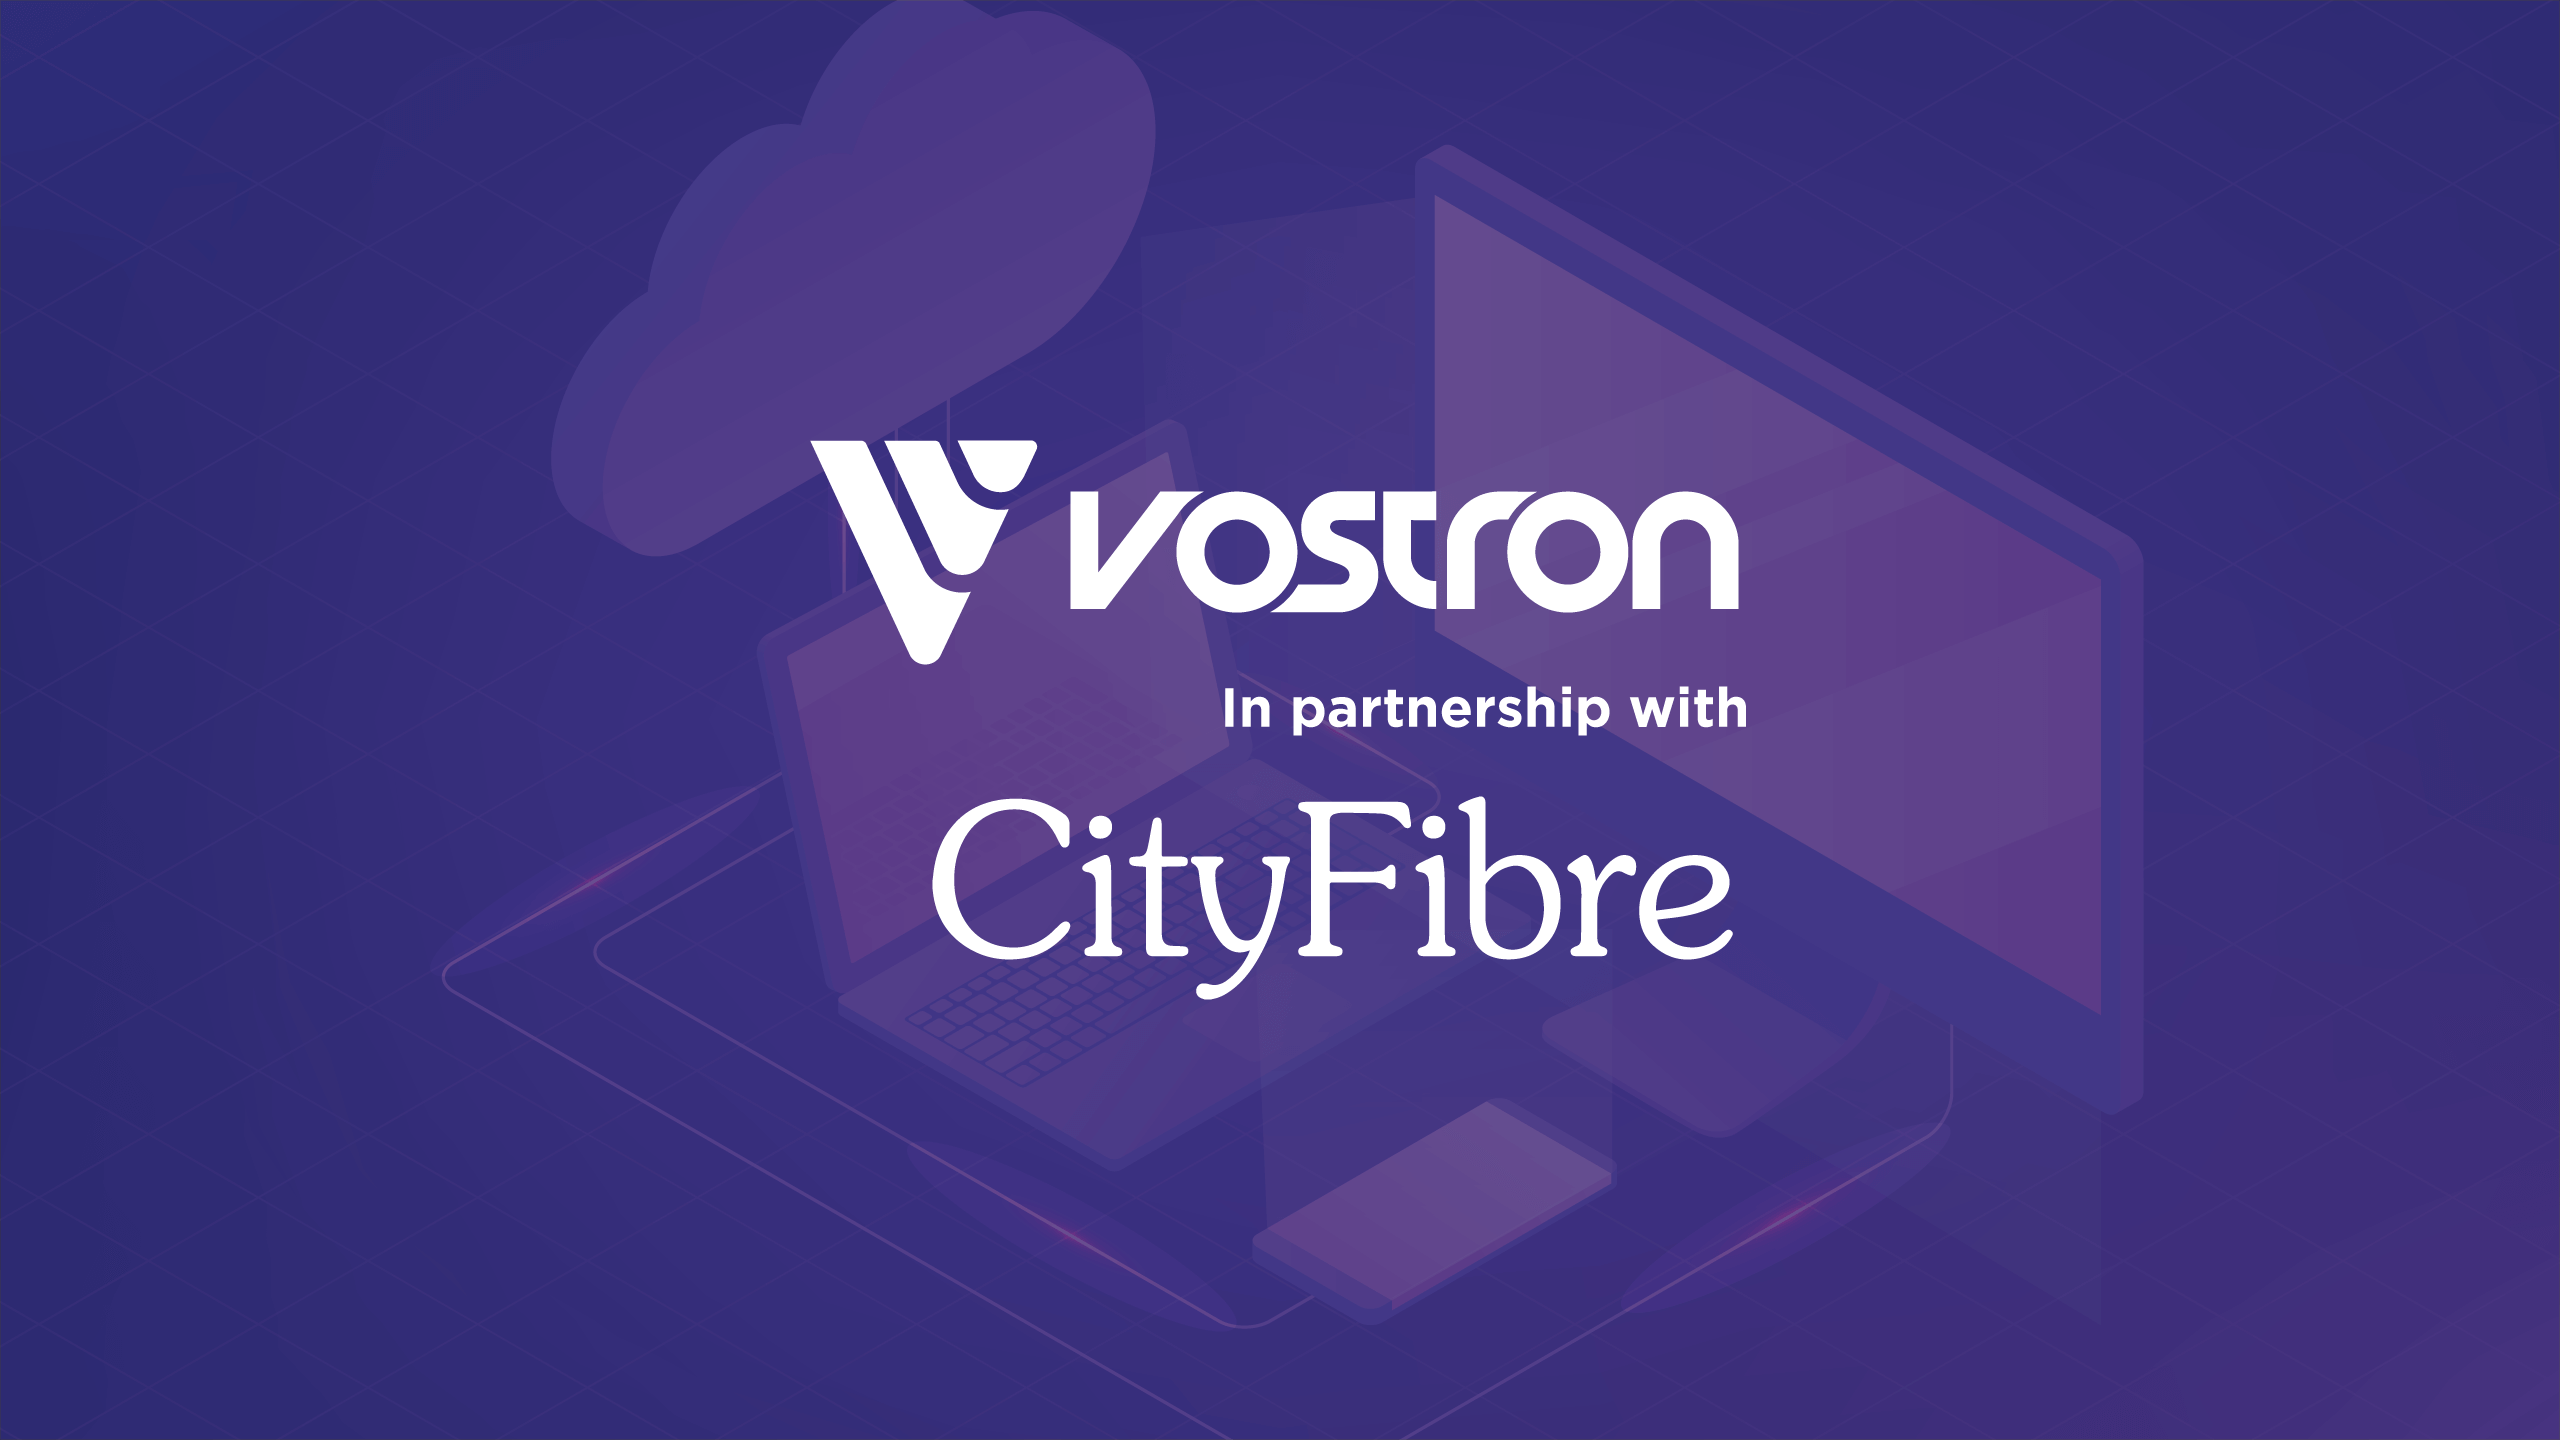 Featured Image for the Vostron City Fibre Coventry site case study